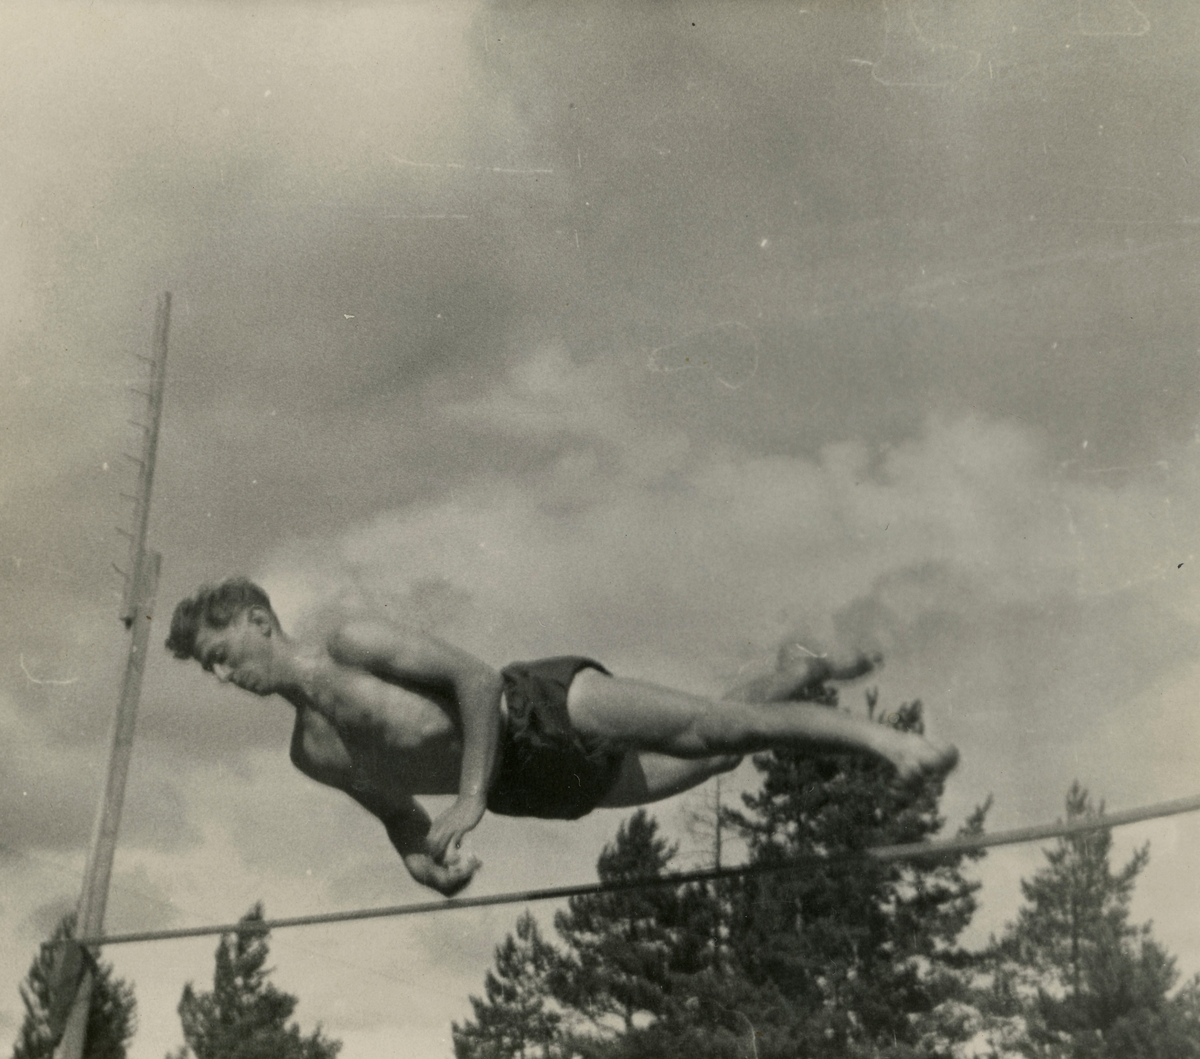 Peter Hugsted during traing at the Ruud cabin